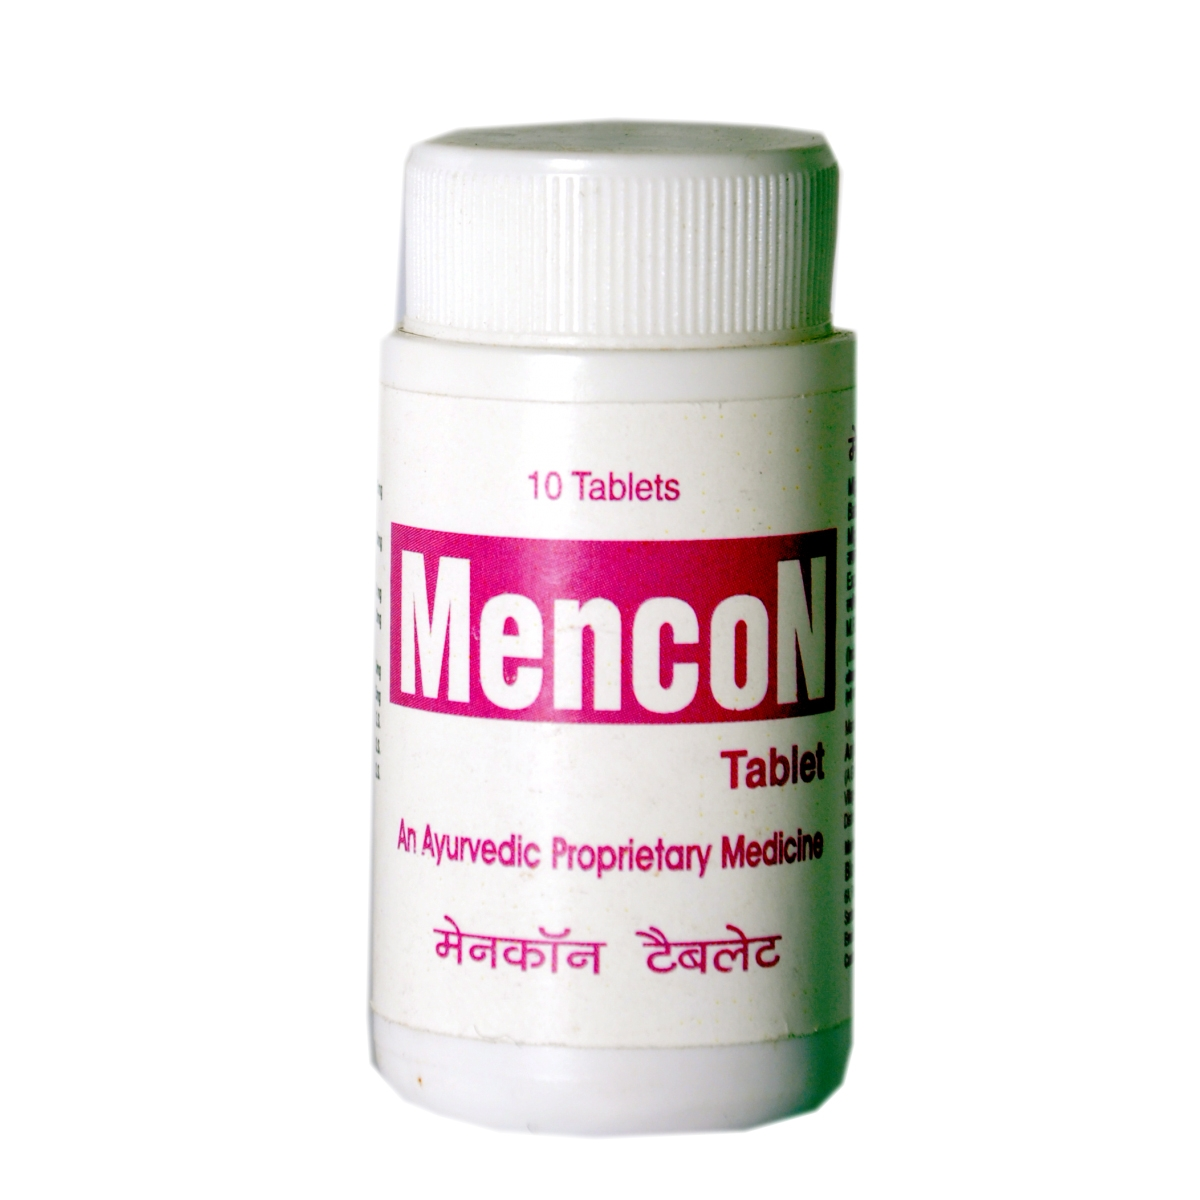 Mencon Tablet In Panchkula